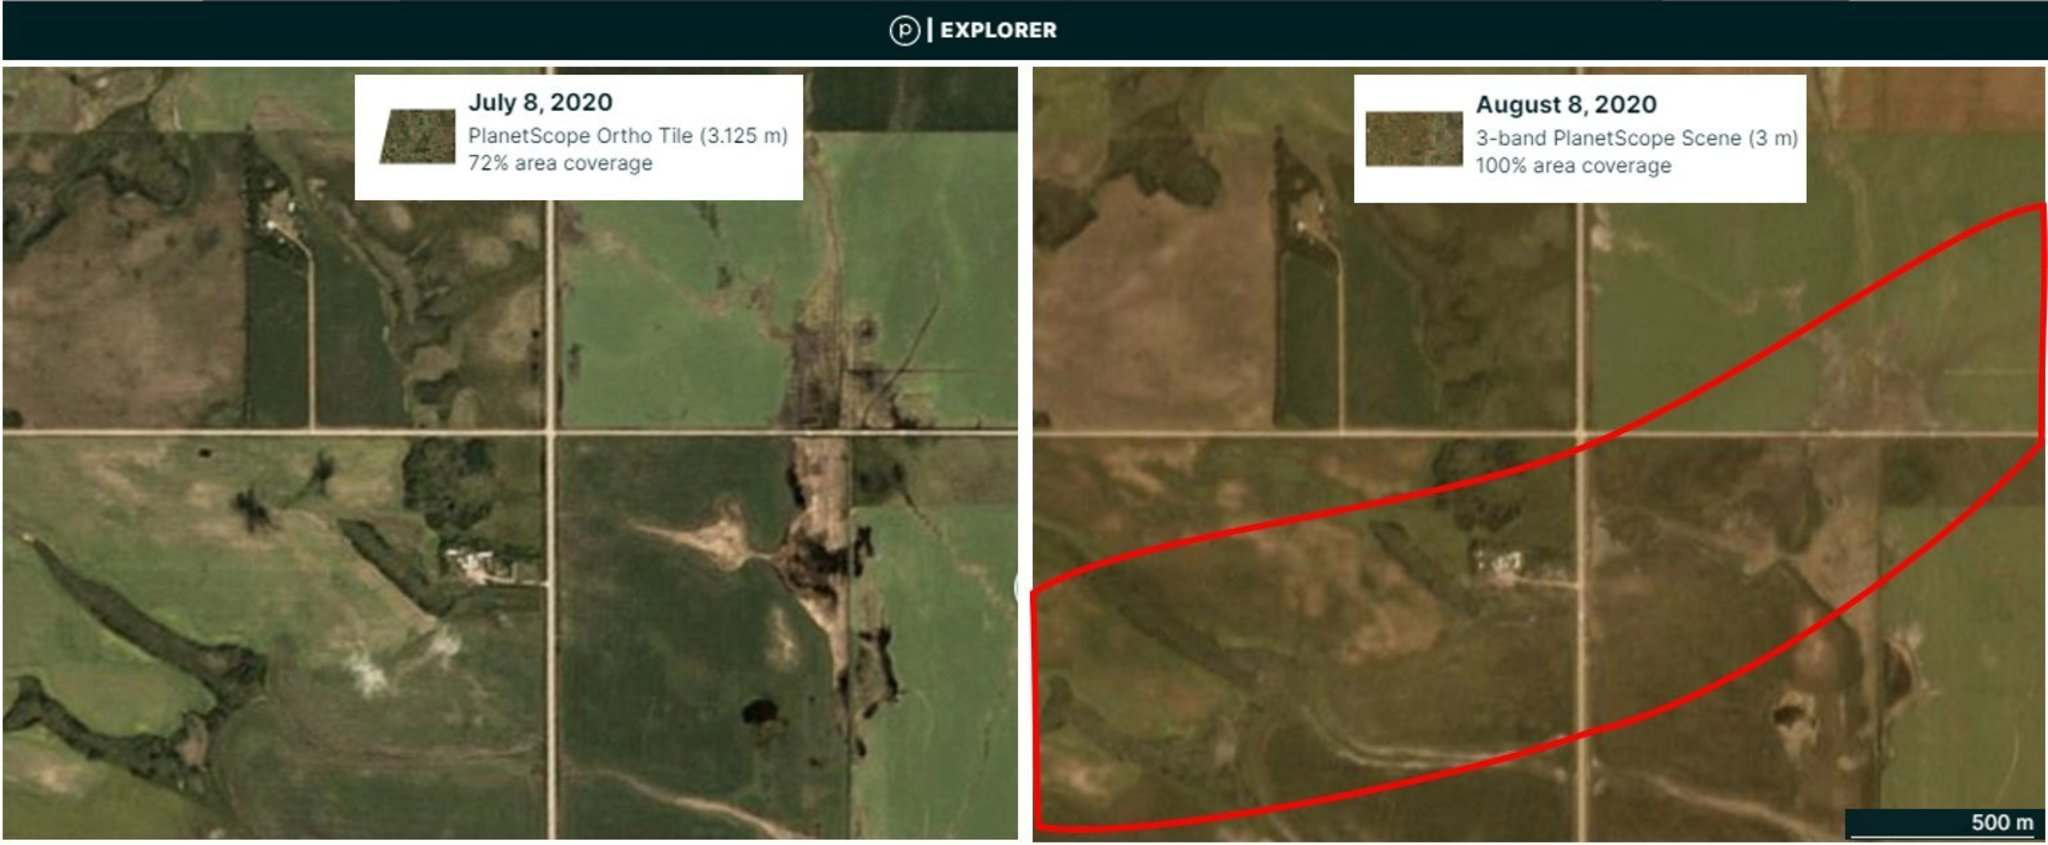 A before and after comparison of satellite images helps researchers assess the storm and its trajectory. (Planet.com, Northern Tornadoes Project)